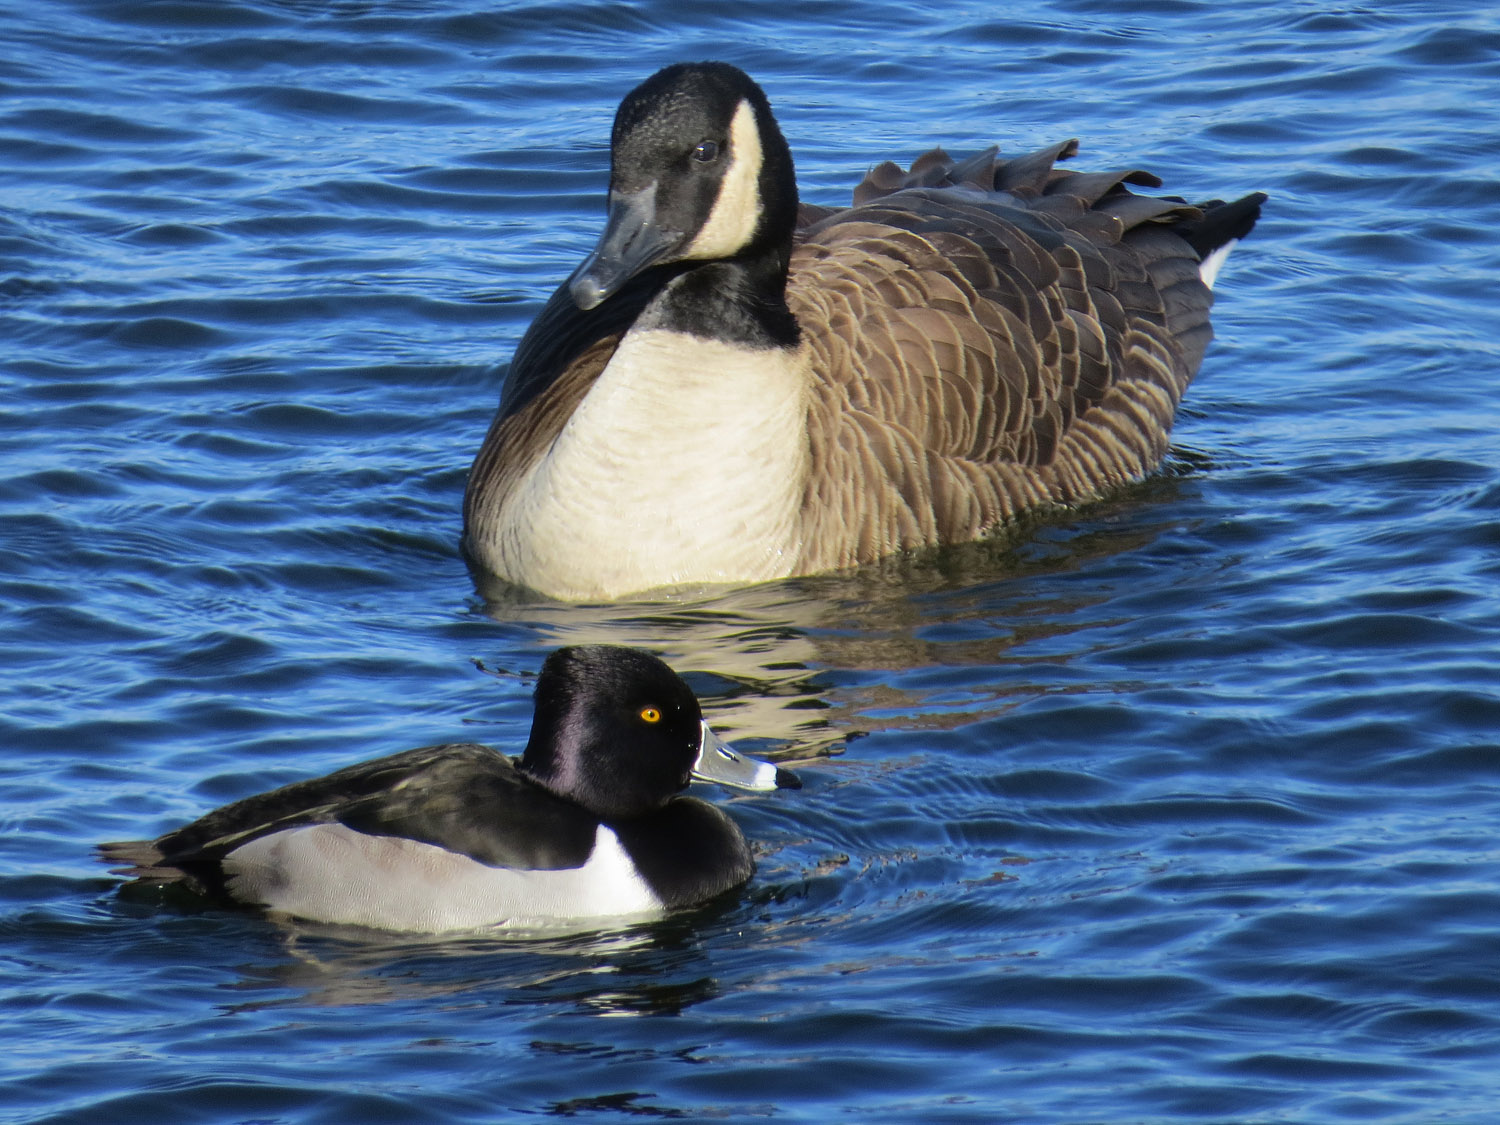 Ring-necked duck and Canada goose, January 19, 2016